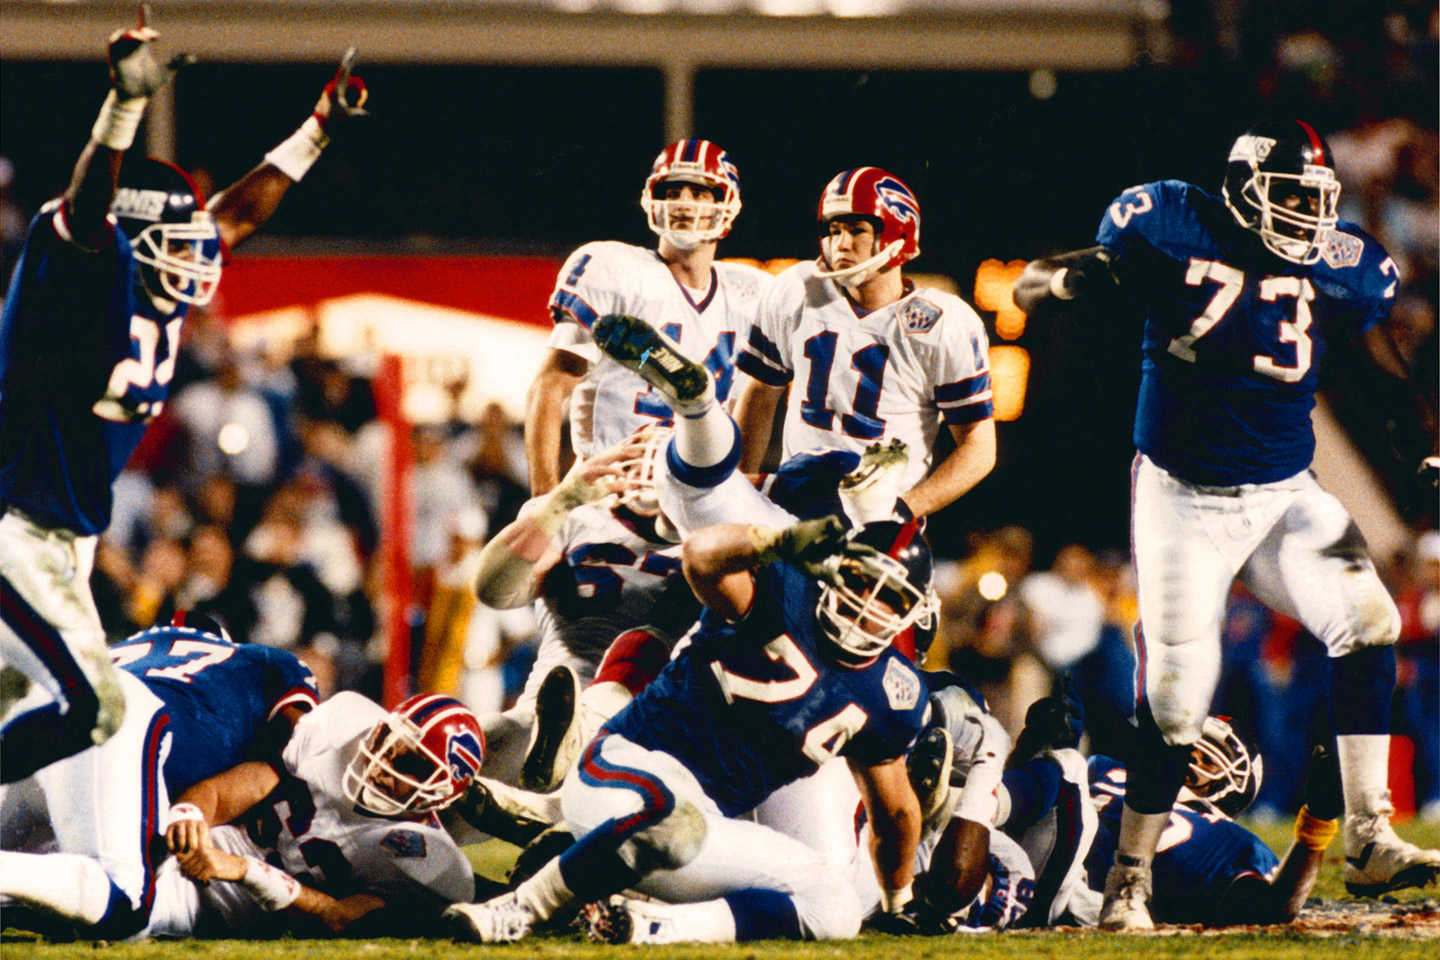 Wide Right, Super Bowl XXV, New York Giants (January 27, 1991)